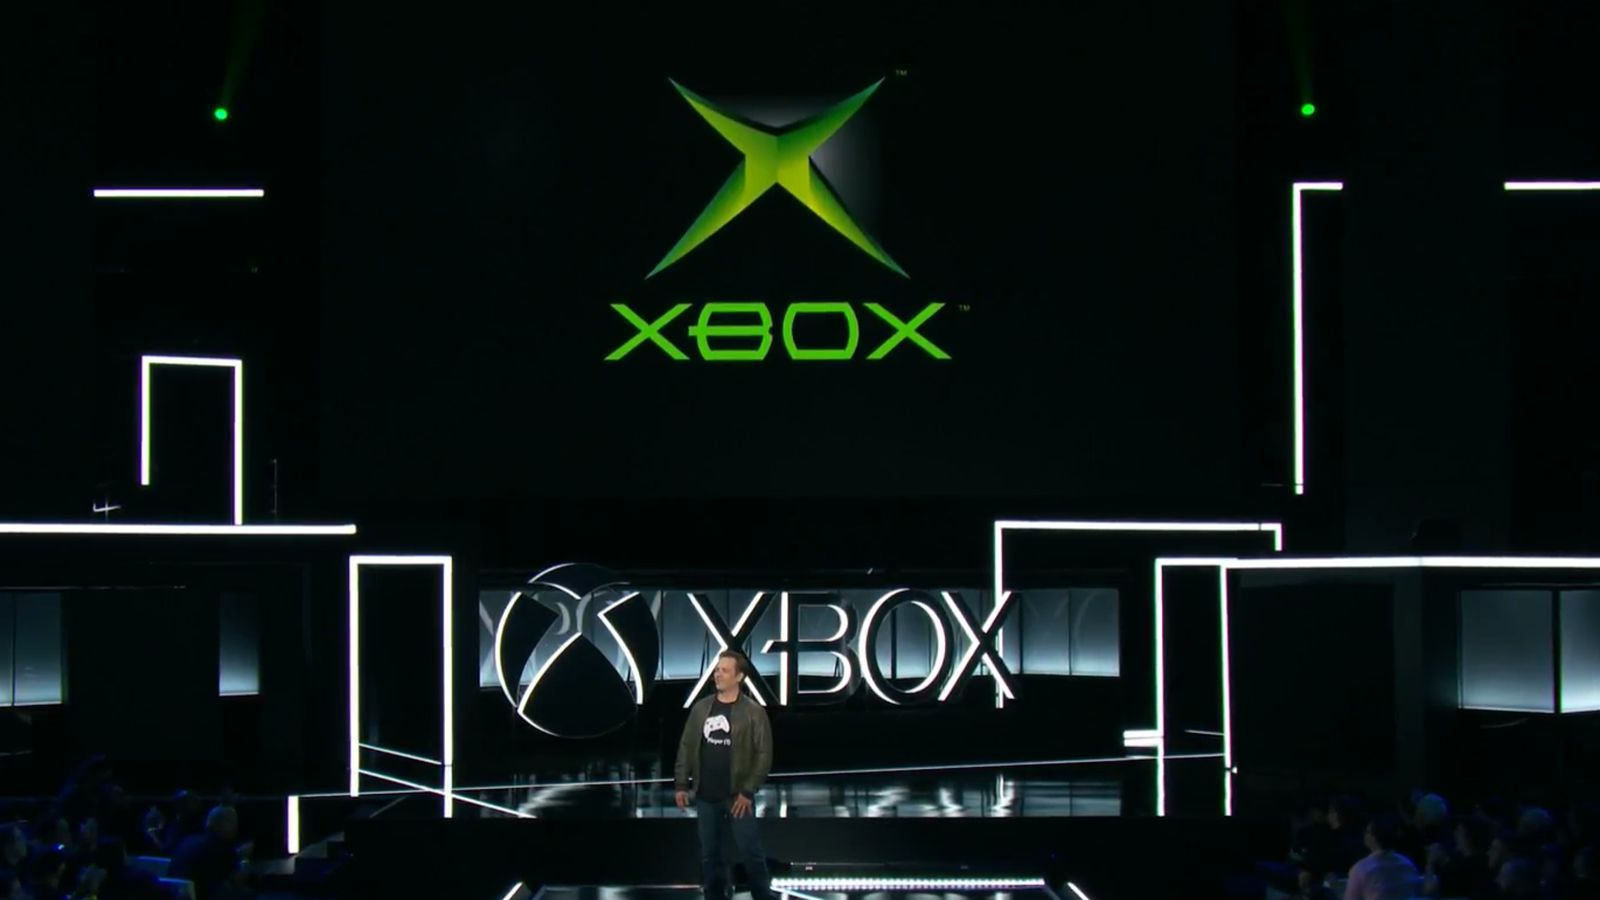 Original Xbox Games For Xbox : Microsoft announces original xbox backwards compatibility